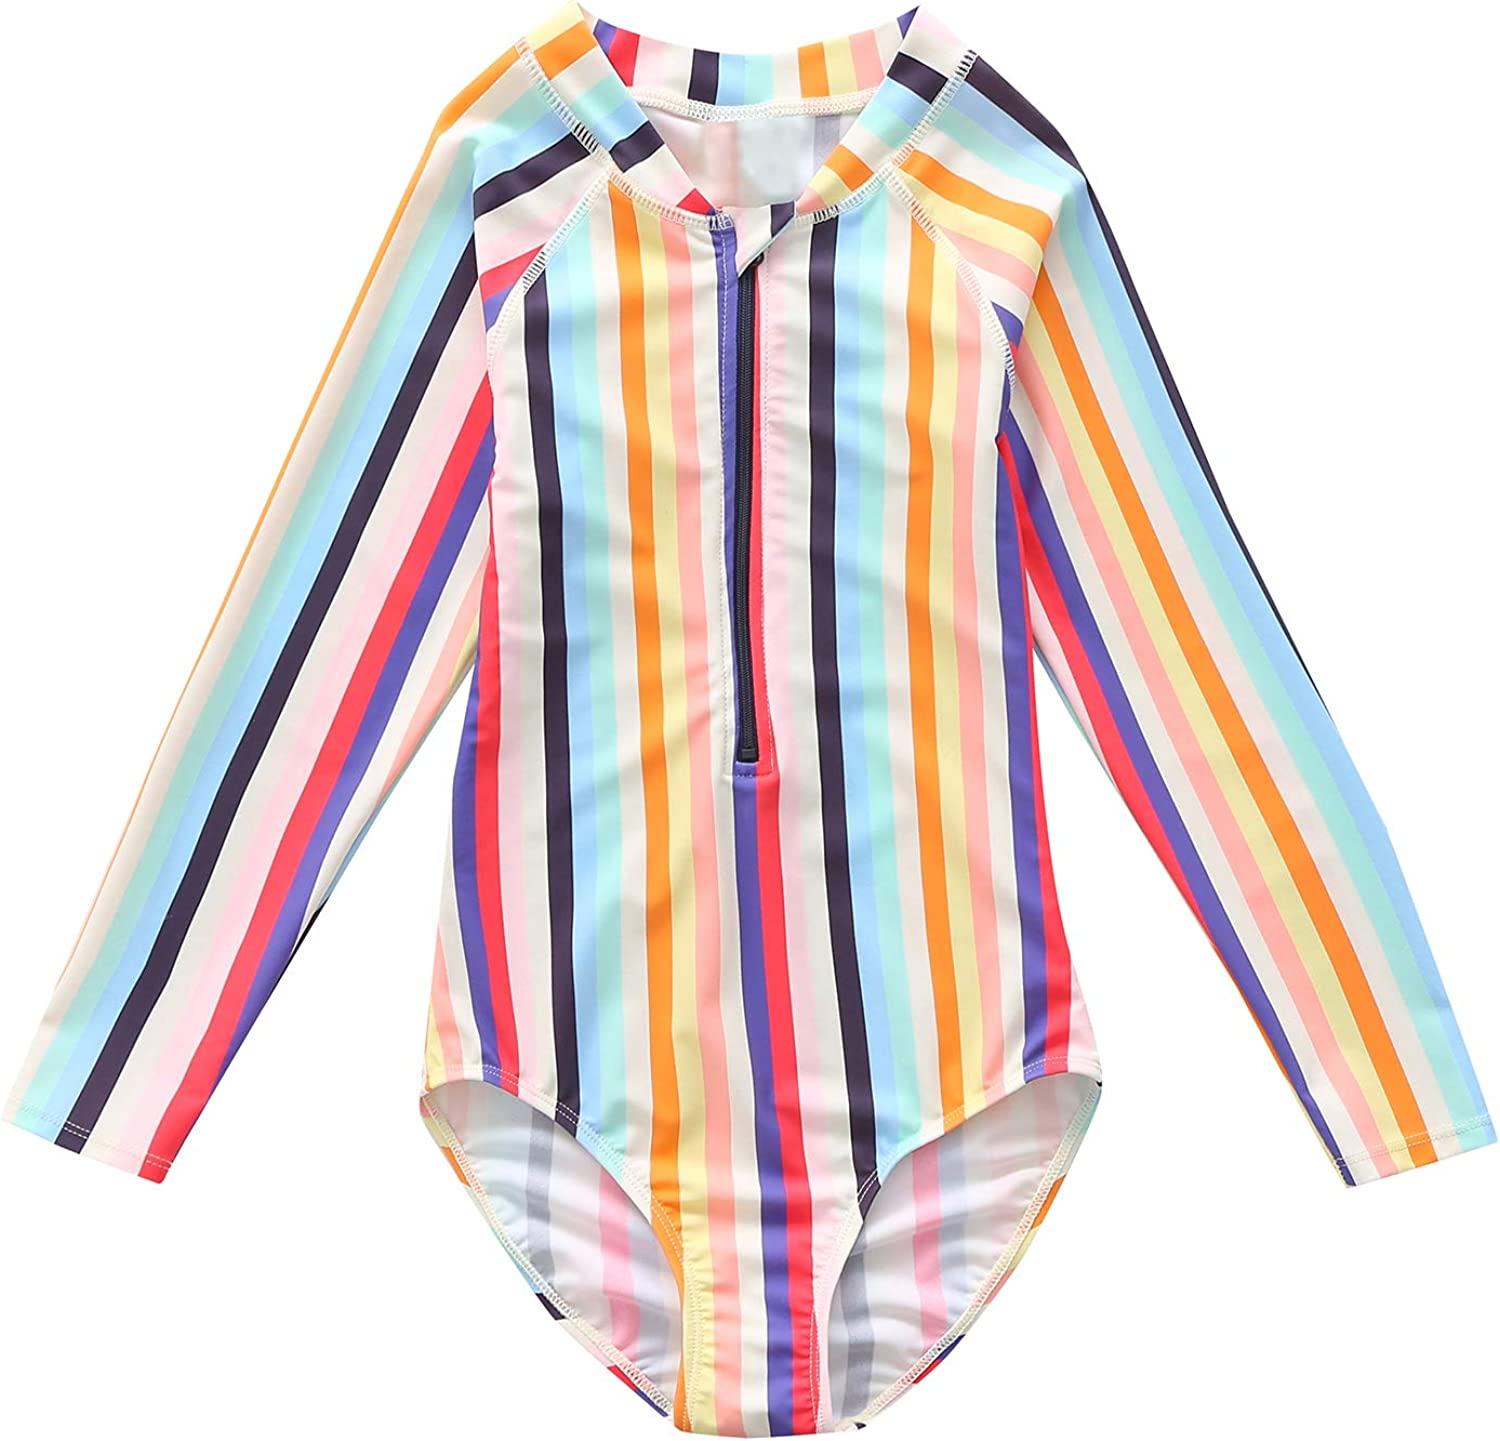 Sun Protection Swimwear Rainbow Striped Bathing Suit 3-14 Years Girls Long Sleeve Rash Guard One Piece Swimsuit Kids UPF 50